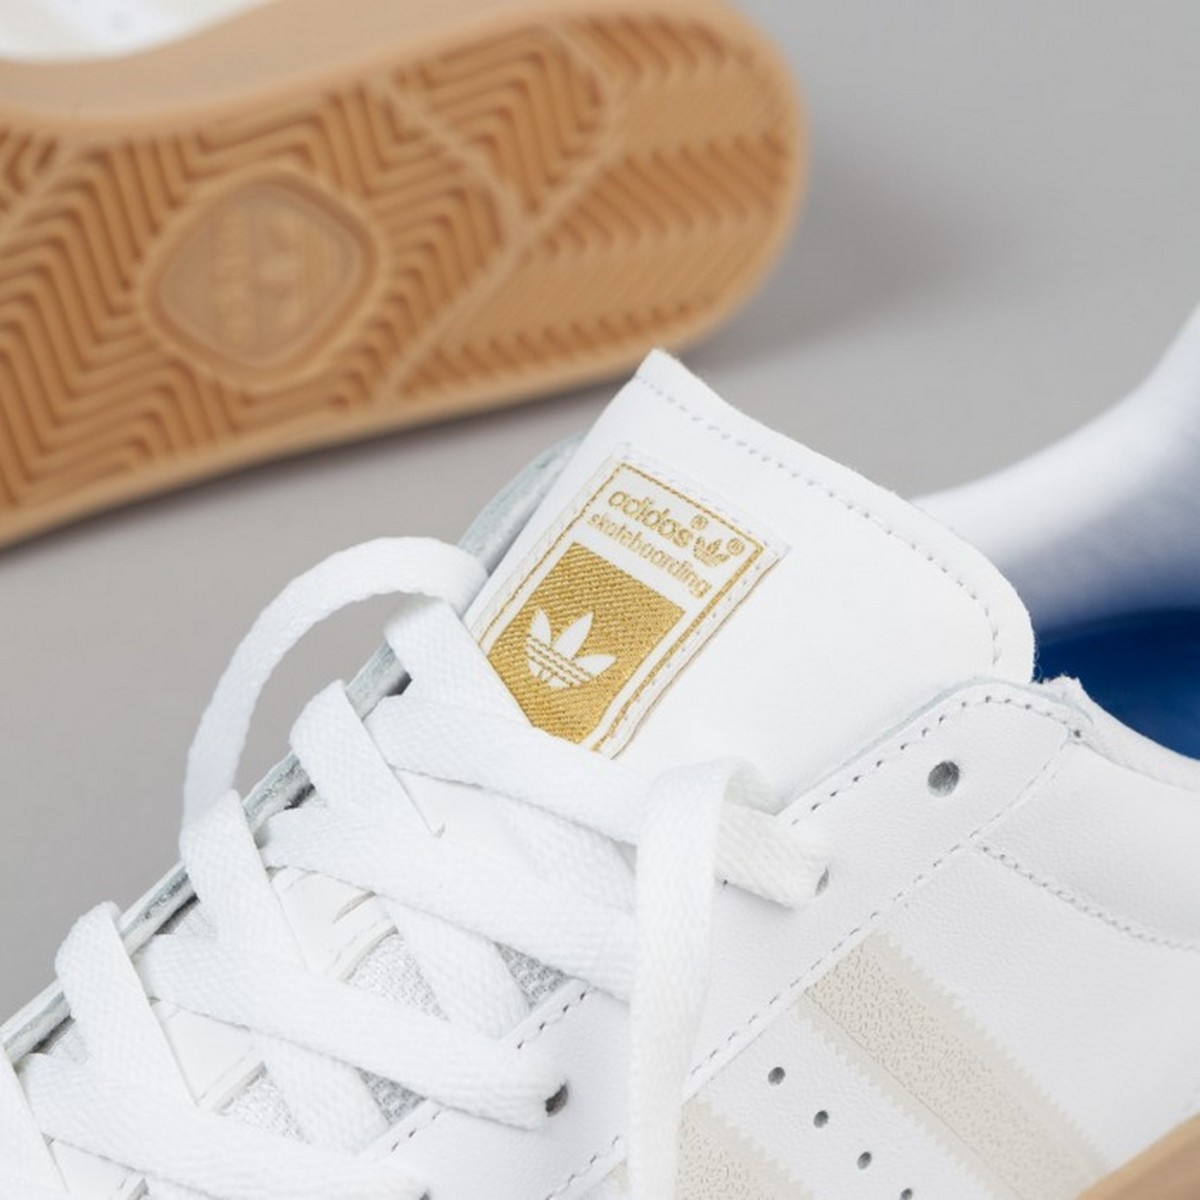 the-adidas-originals-superstar-vulc-arrives-in-white-leather-with-gum-soles-2